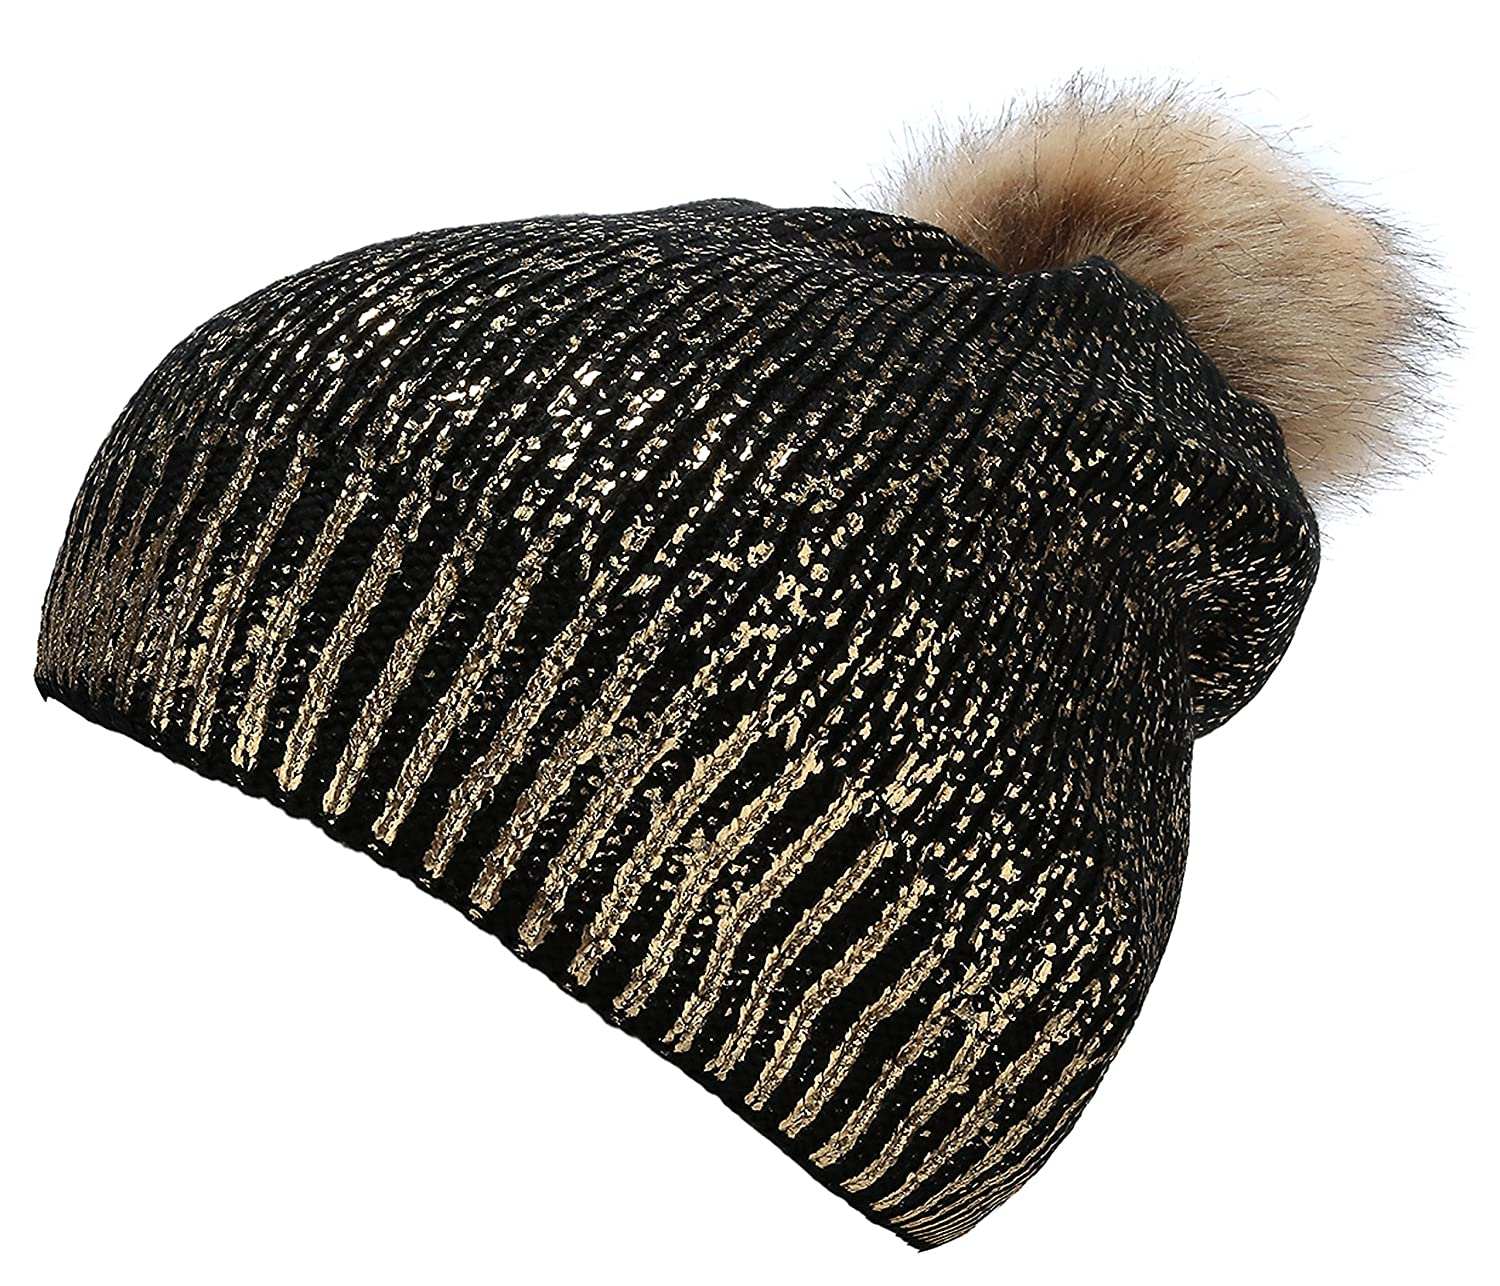 3ad3cc40c2c79 Thick Sparkly Knit Hat Metallic Shine Faux Fur Pom Pom Slouch Beanie Hats  Black Gold at Amazon Women s Clothing store